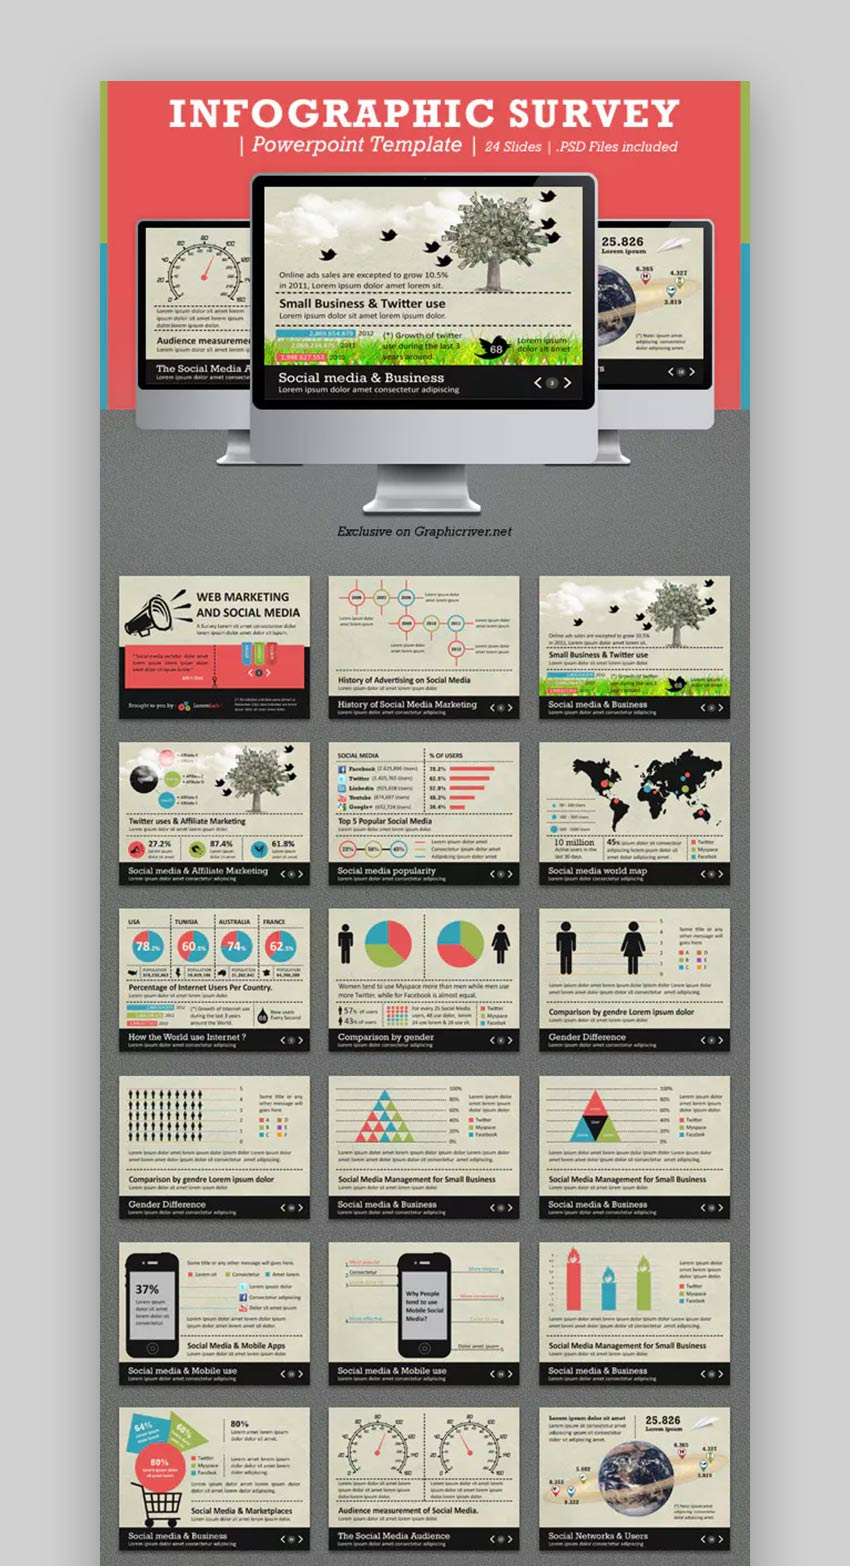 Infographic Survey PPTX Template